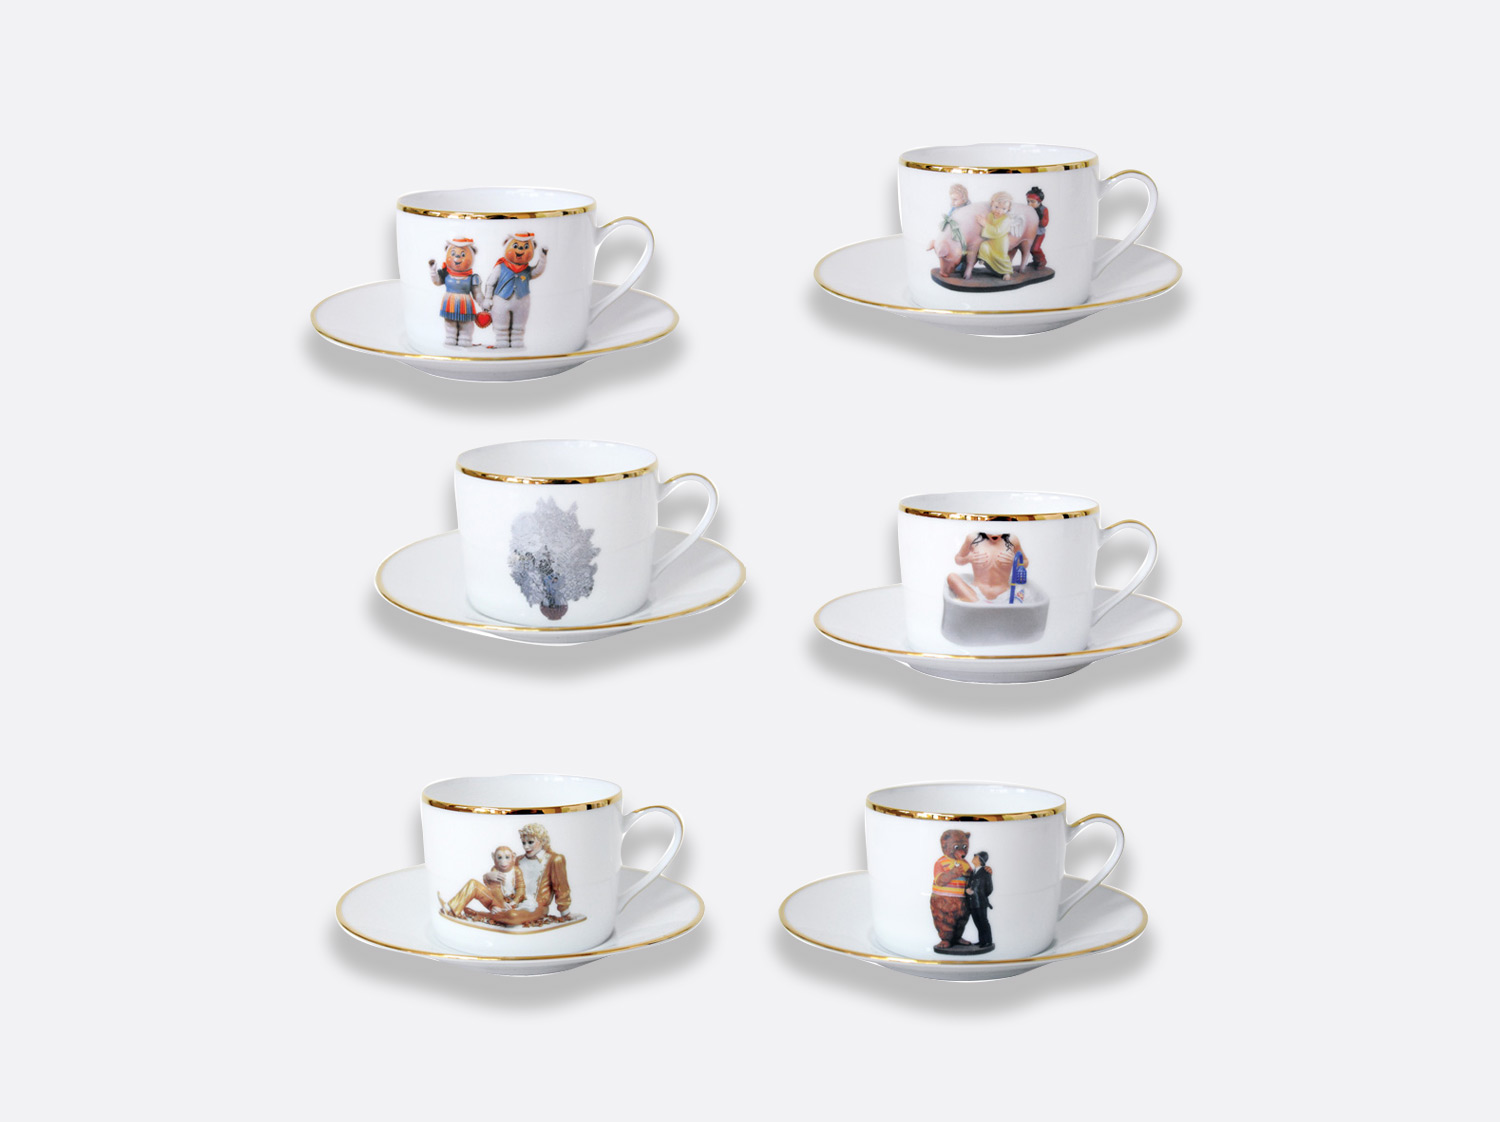 Coffret de 6 tasses 15 cl et soucoupes à thé assorties en porcelaine de la collection Banality series Bernardaud